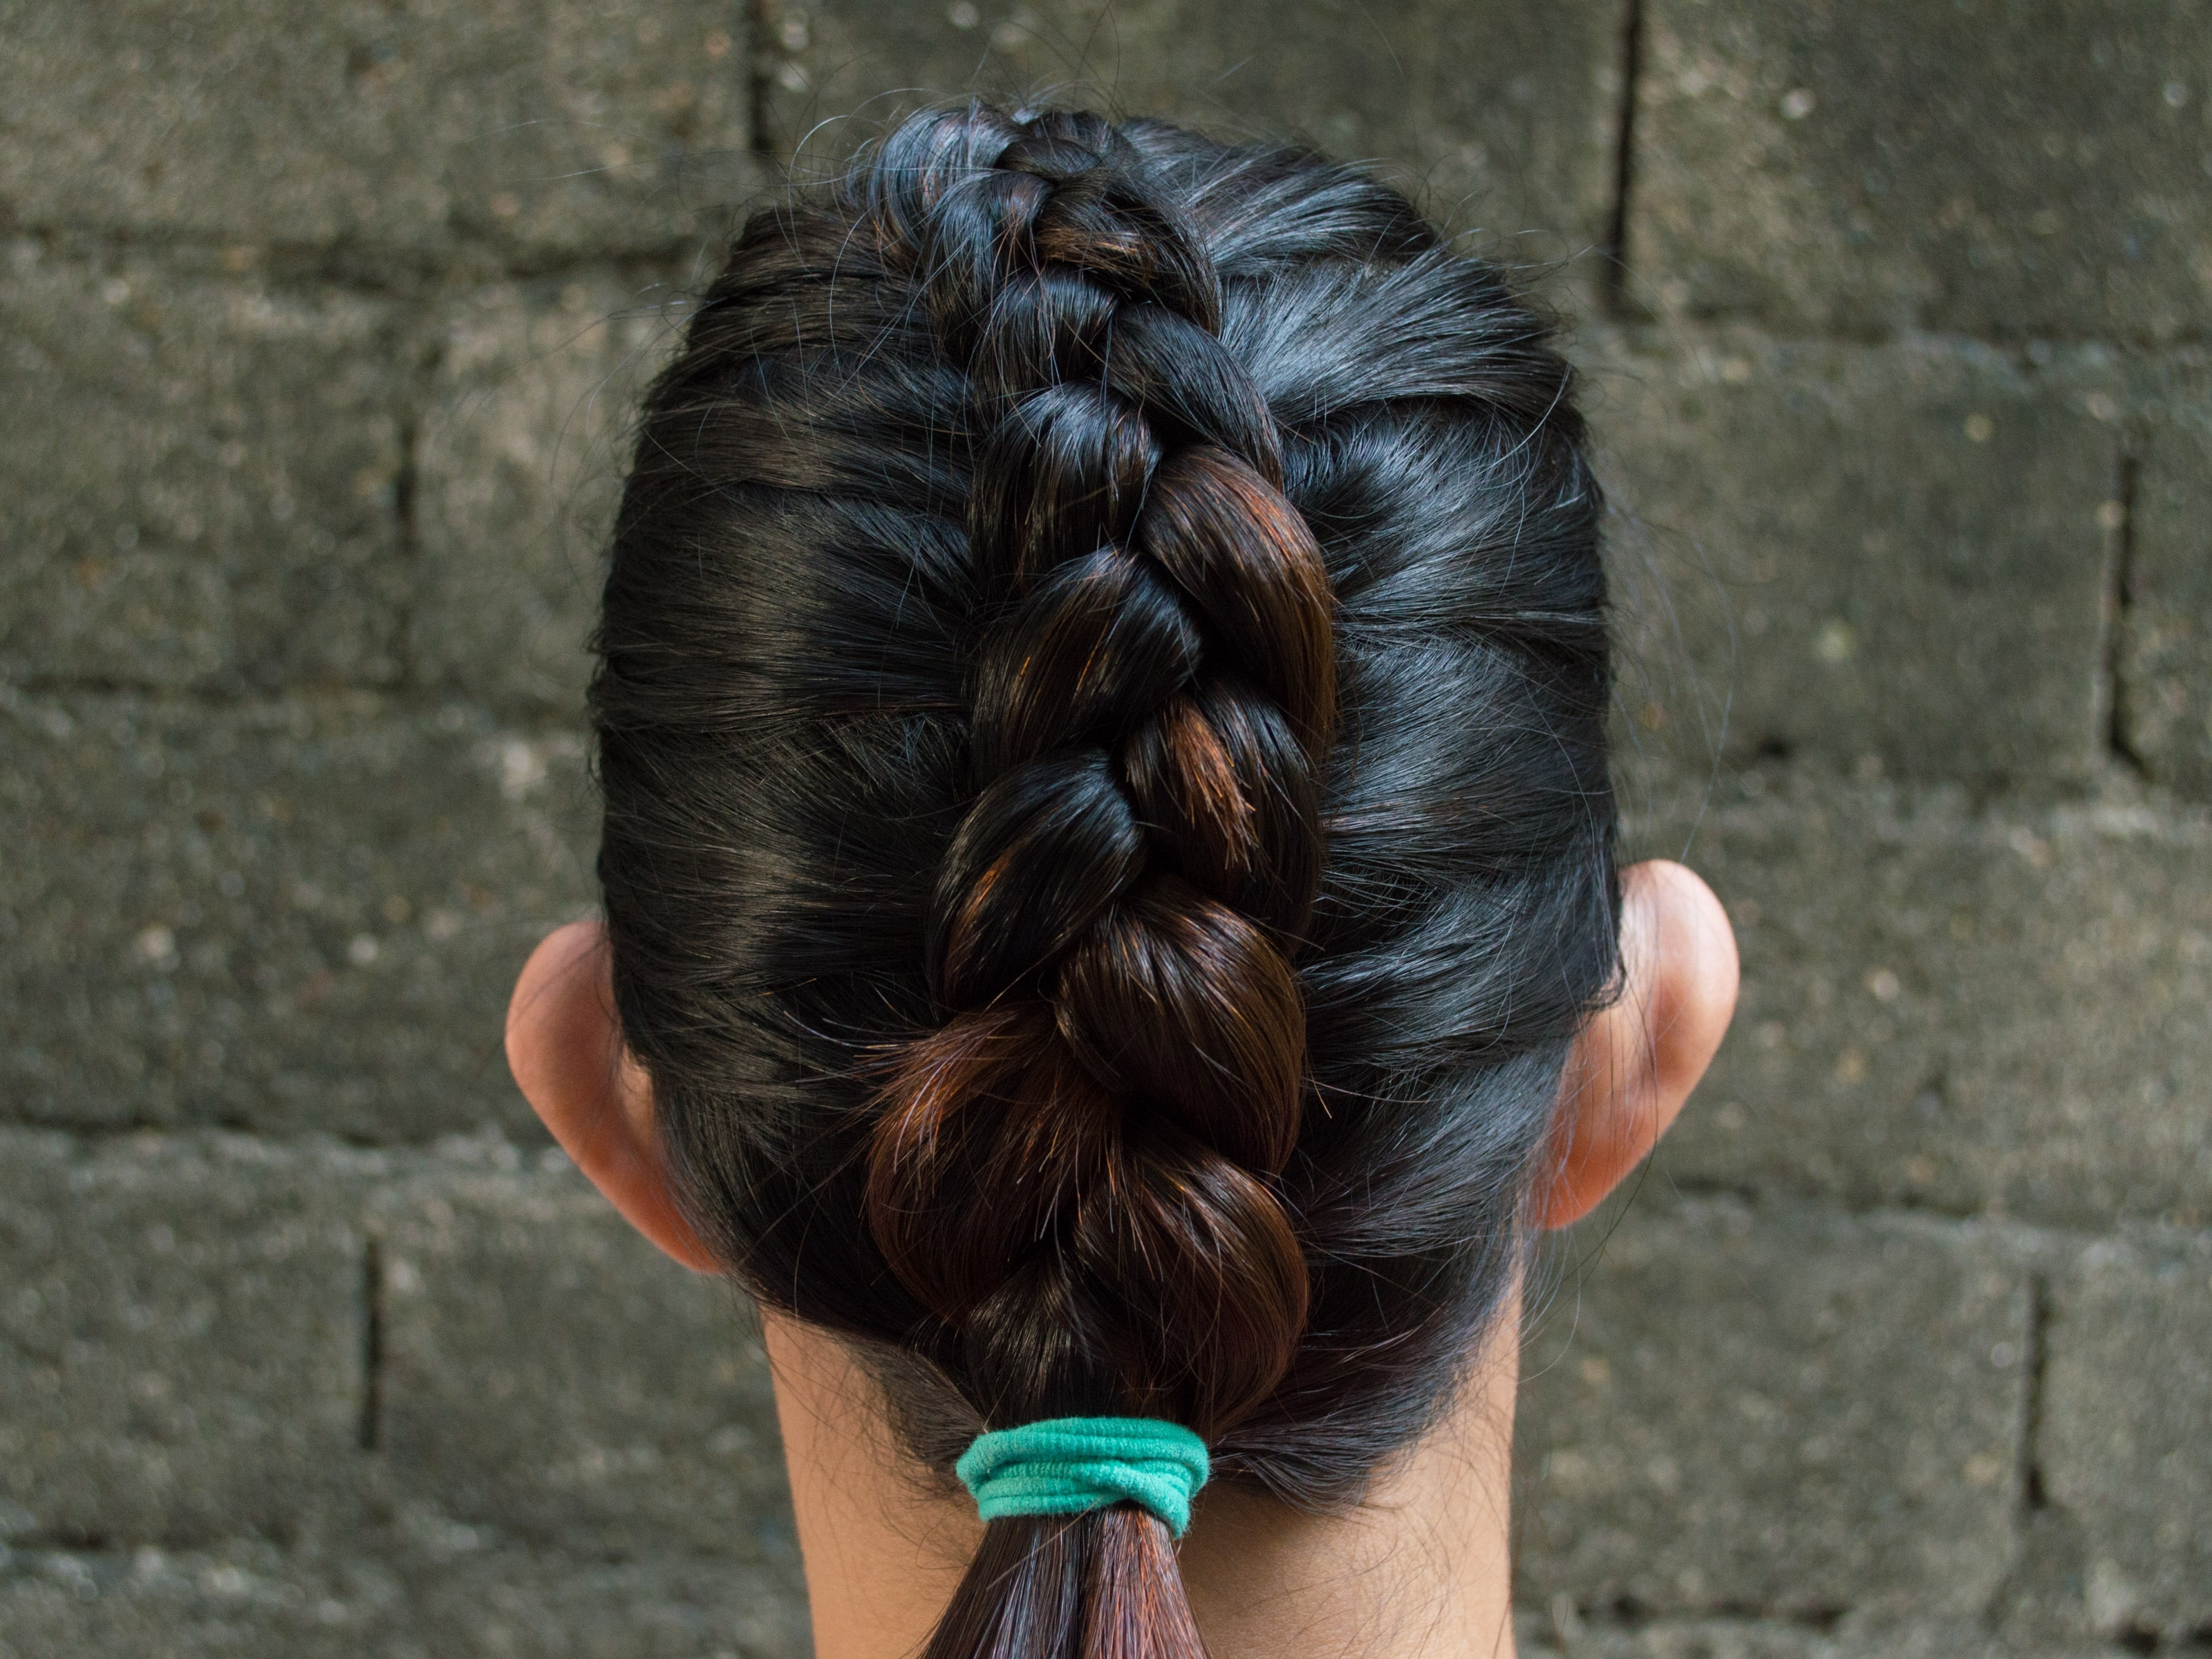 Current Simple French Braids For Long Hair With How To Do A Reverse French Braid: 6 Steps (With Pictures) (View 7 of 15)